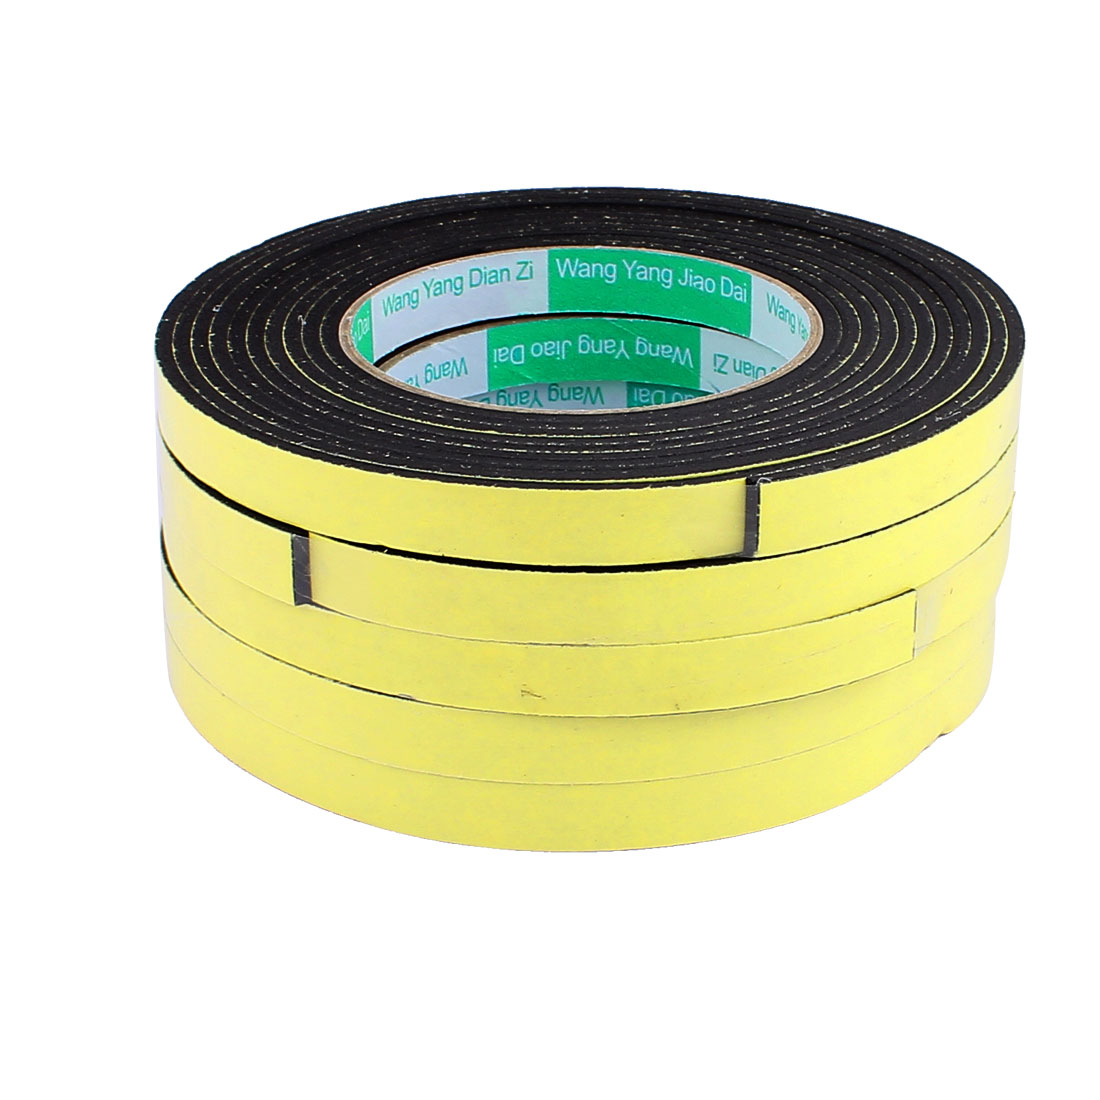 5 Pcs 1.2CM Width 4M Length 3MM Thick Single Sided Sealing Shockproof Sponge Tape